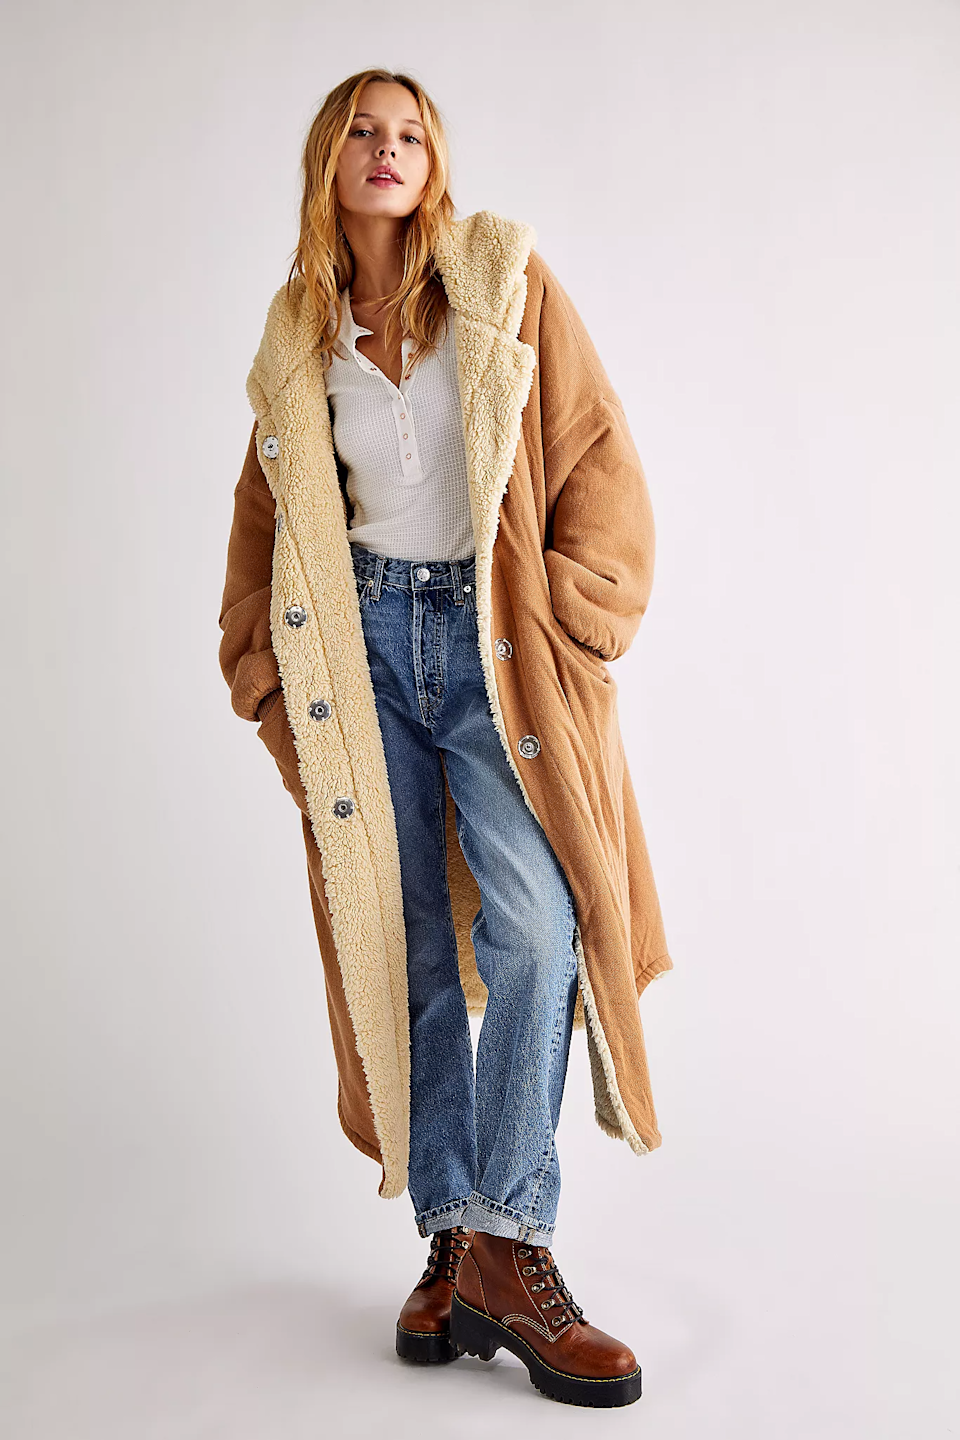 """<br><br><strong>Free People</strong> North Pole Cardi, $, available at <a href=""""https://go.skimresources.com/?id=30283X879131&url=https%3A%2F%2Fwww.freepeople.com%2Fshop%2Fnorth-pole-cardi%2F"""" rel=""""nofollow noopener"""" target=""""_blank"""" data-ylk=""""slk:Free People"""" class=""""link rapid-noclick-resp"""">Free People</a>"""